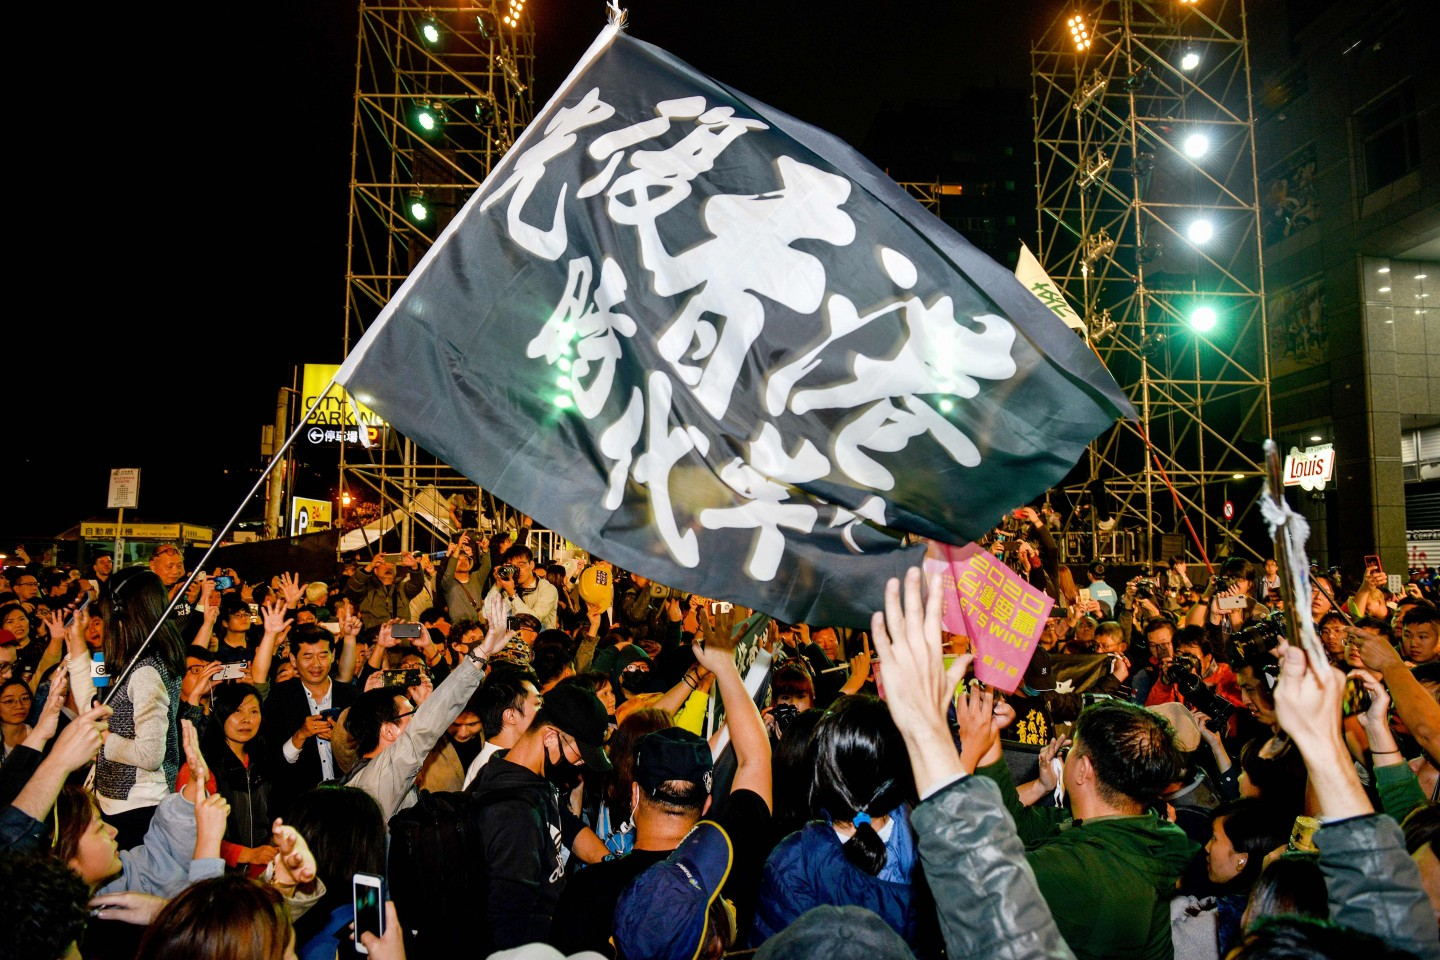 Supporters celebrate the poll victory of Taiwan's President Tsai Ing-wen and chant slogans in support of pro-democracy protesters in Hong Kong, outside the Democratic Progressive Party's headquarters as results came in for the general election in Taipei on 11 January 2020. (Chris Stowers/AFP)